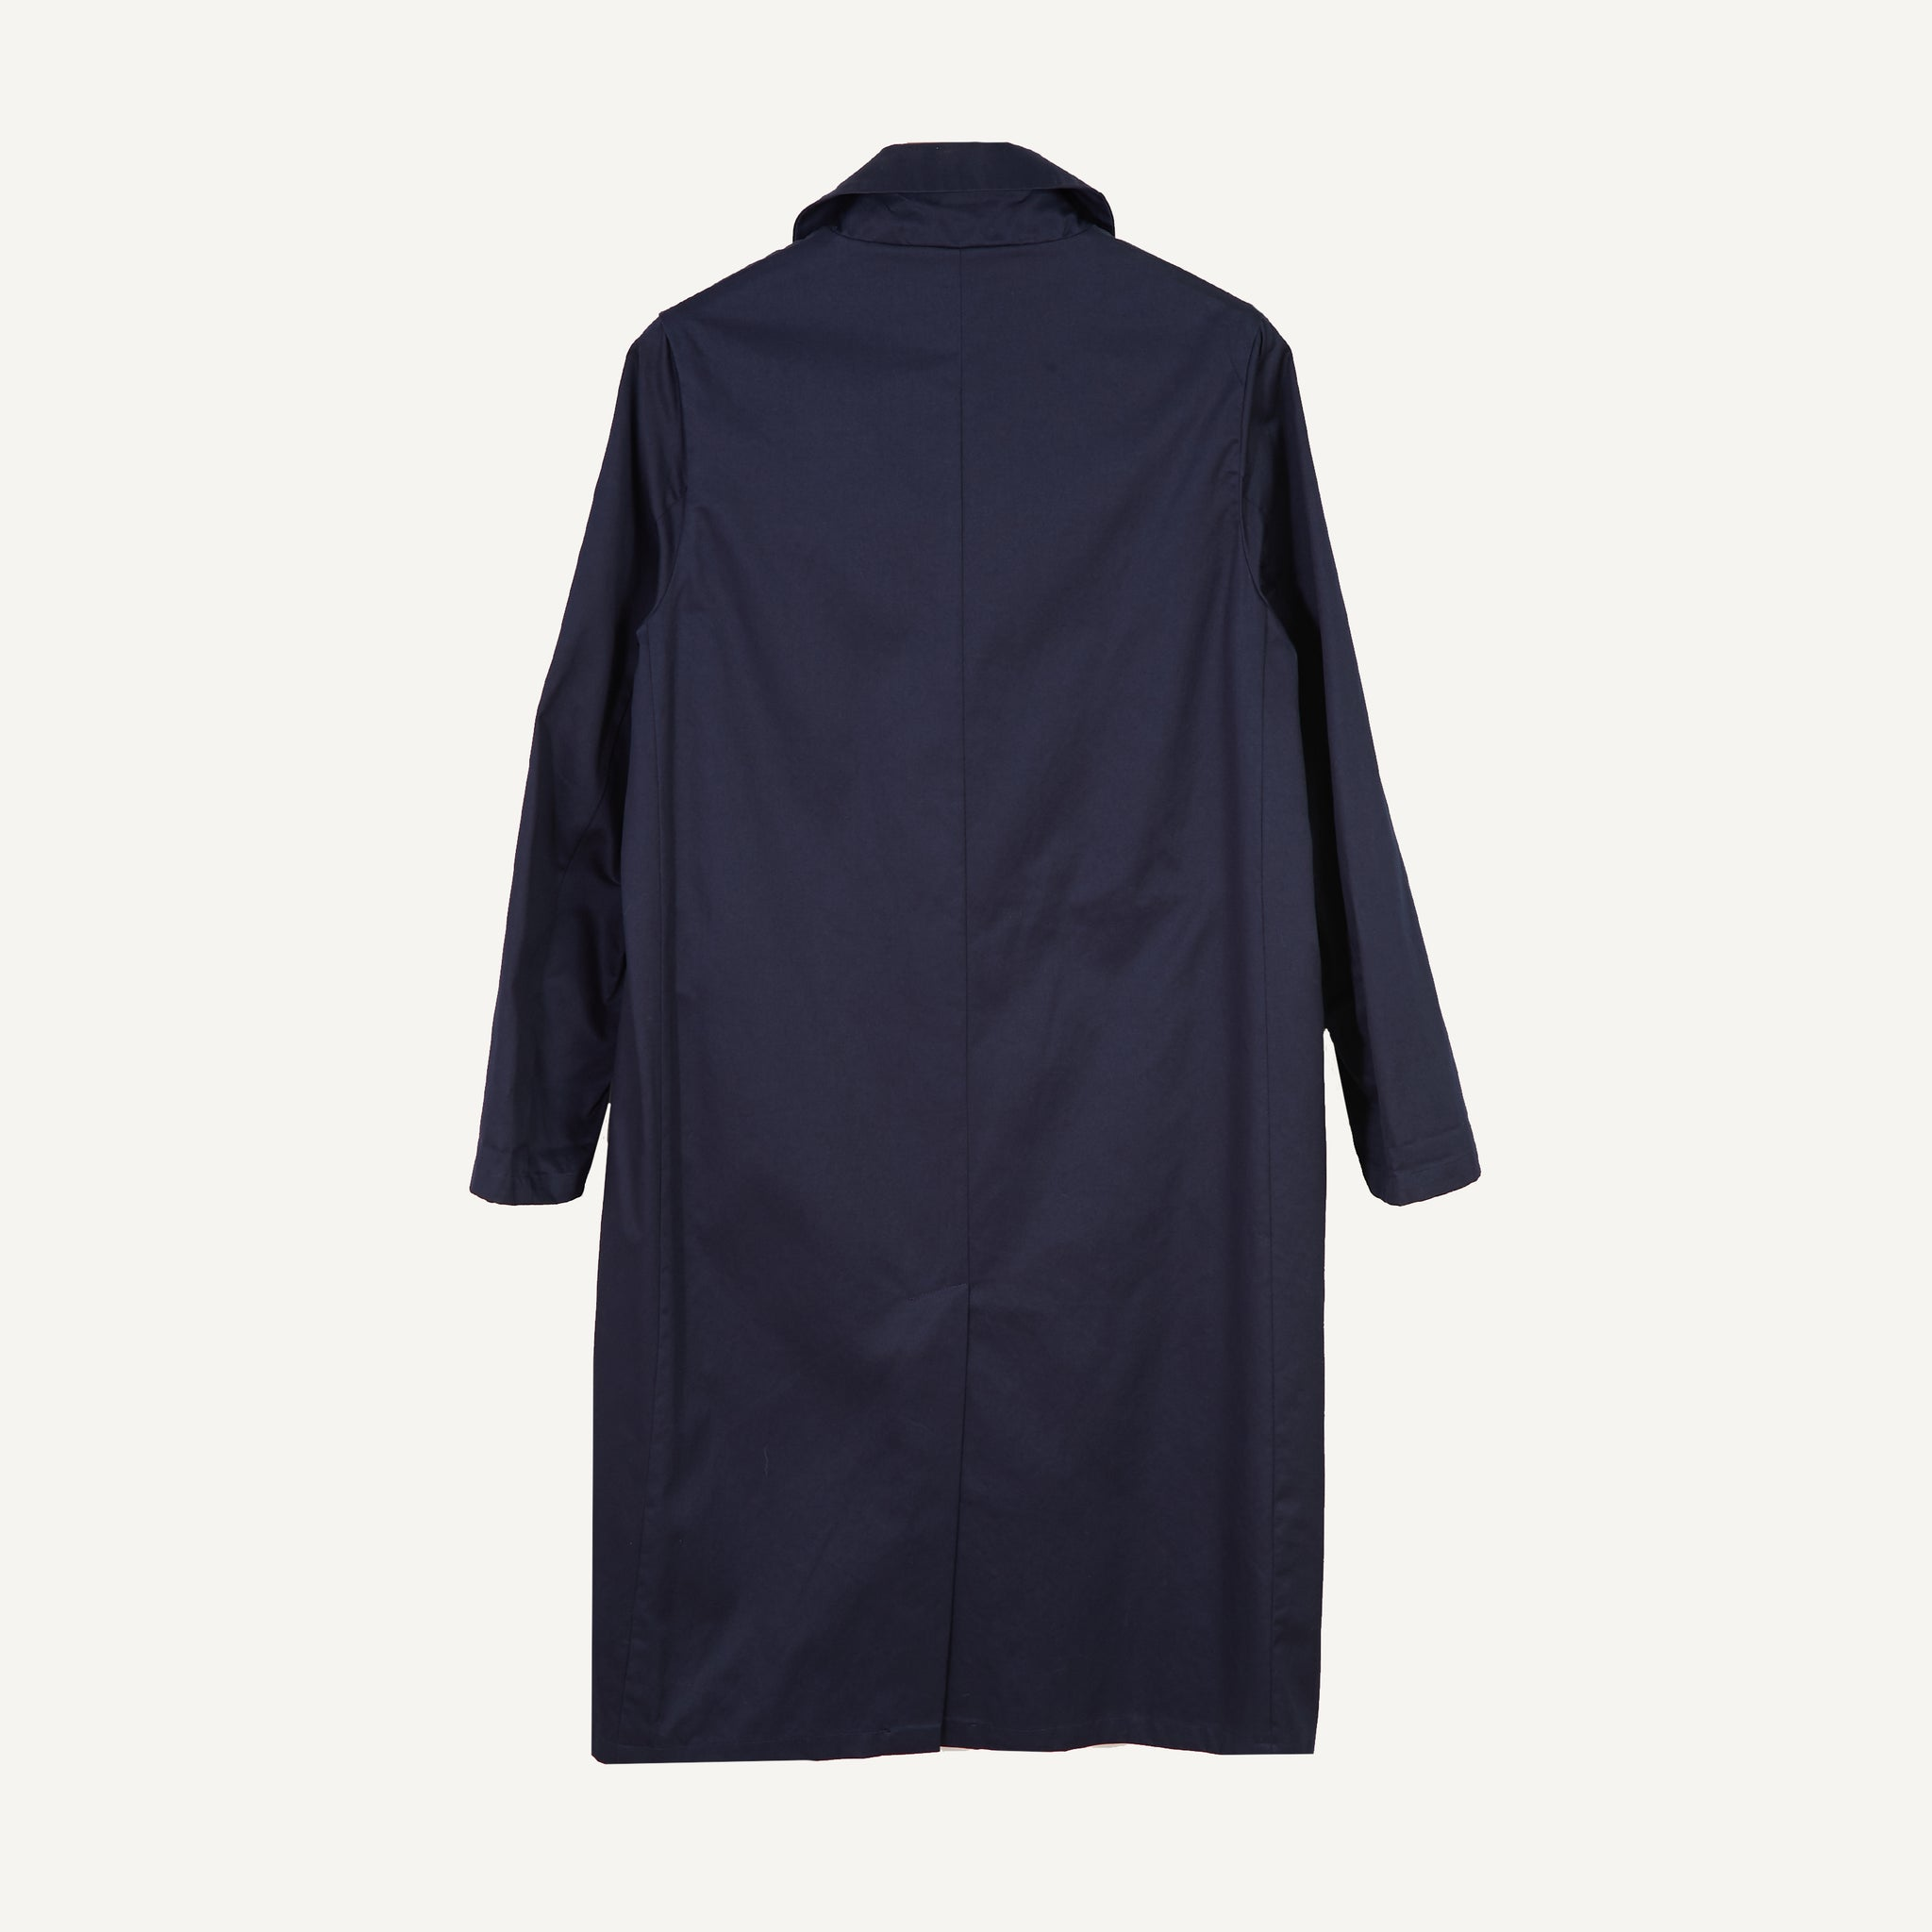 APUNTOB WAXED COTTON COAT